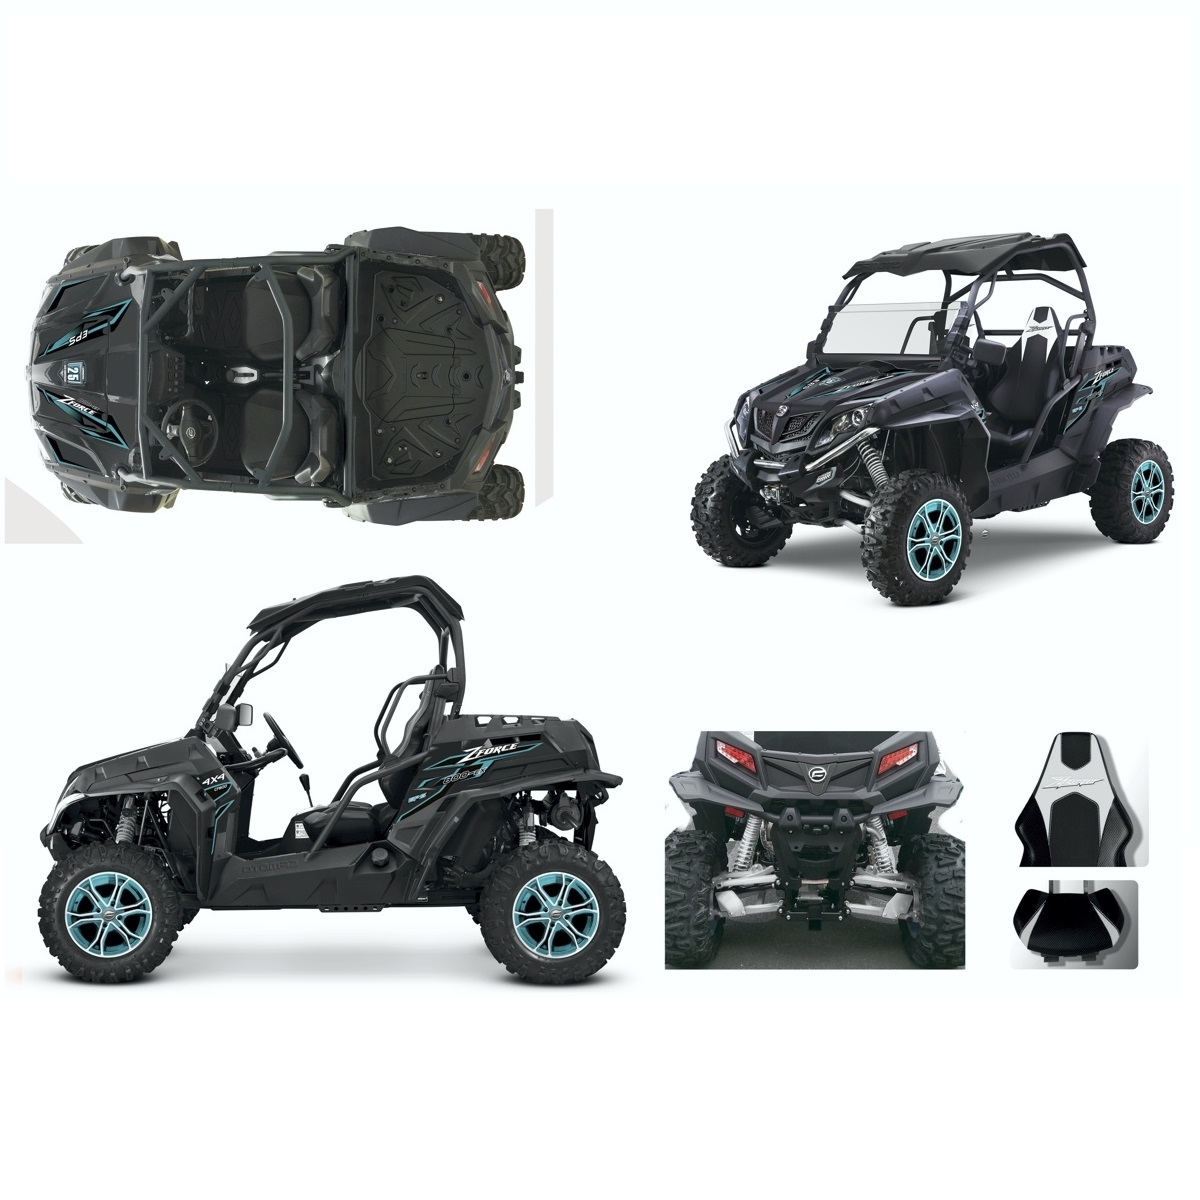 Buggy / Utility Vehicles